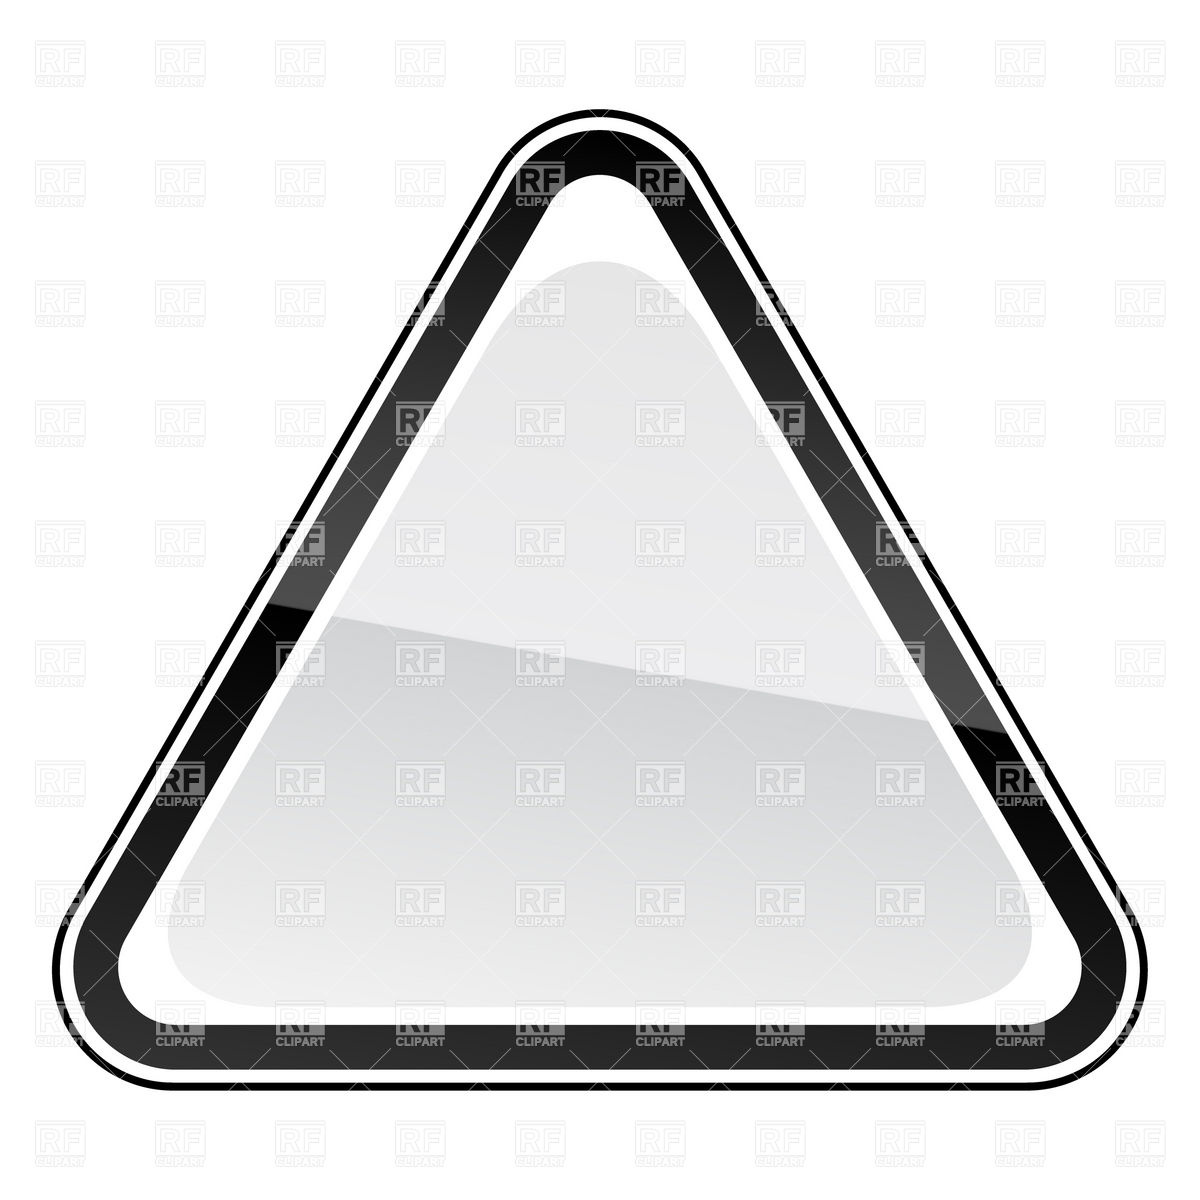 Road sign clipart black and white 4 » Clipart Station.